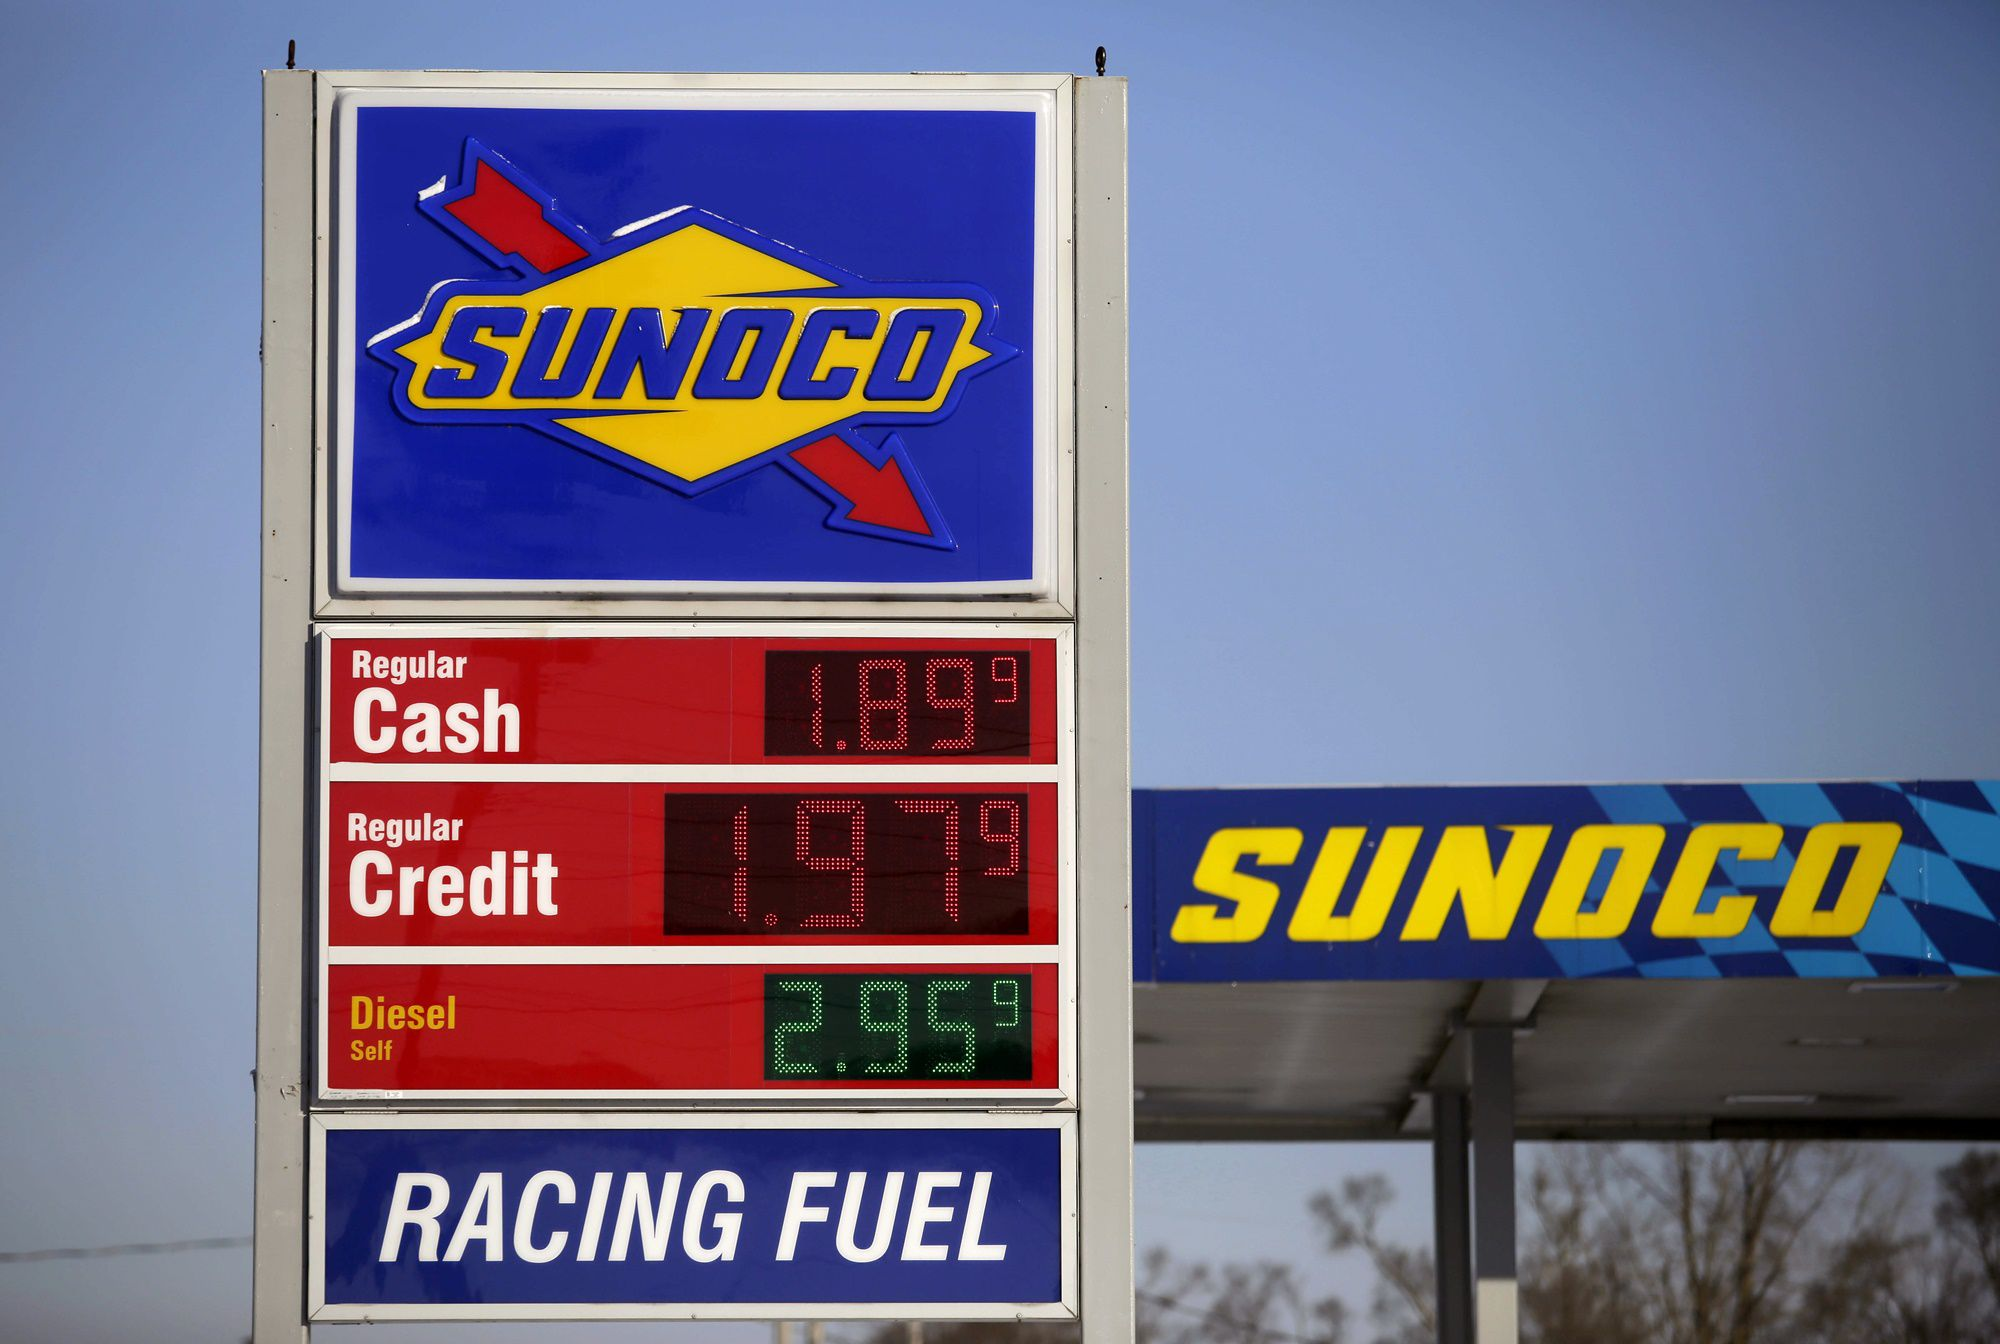 FLINT, MI - JANUARY 6 : Regular gas cash price is displayed for $1.89 a gallon at the Sunoco station January 6, 2015 in Flint, Michigan. Crude oil dropped below $50 a barrel Tuesday making the average regular gallon of gas across the nation $2.194 according to AAA Daily Fuel Gauge Report. (Photo by Joshua Lott/Getty Images)